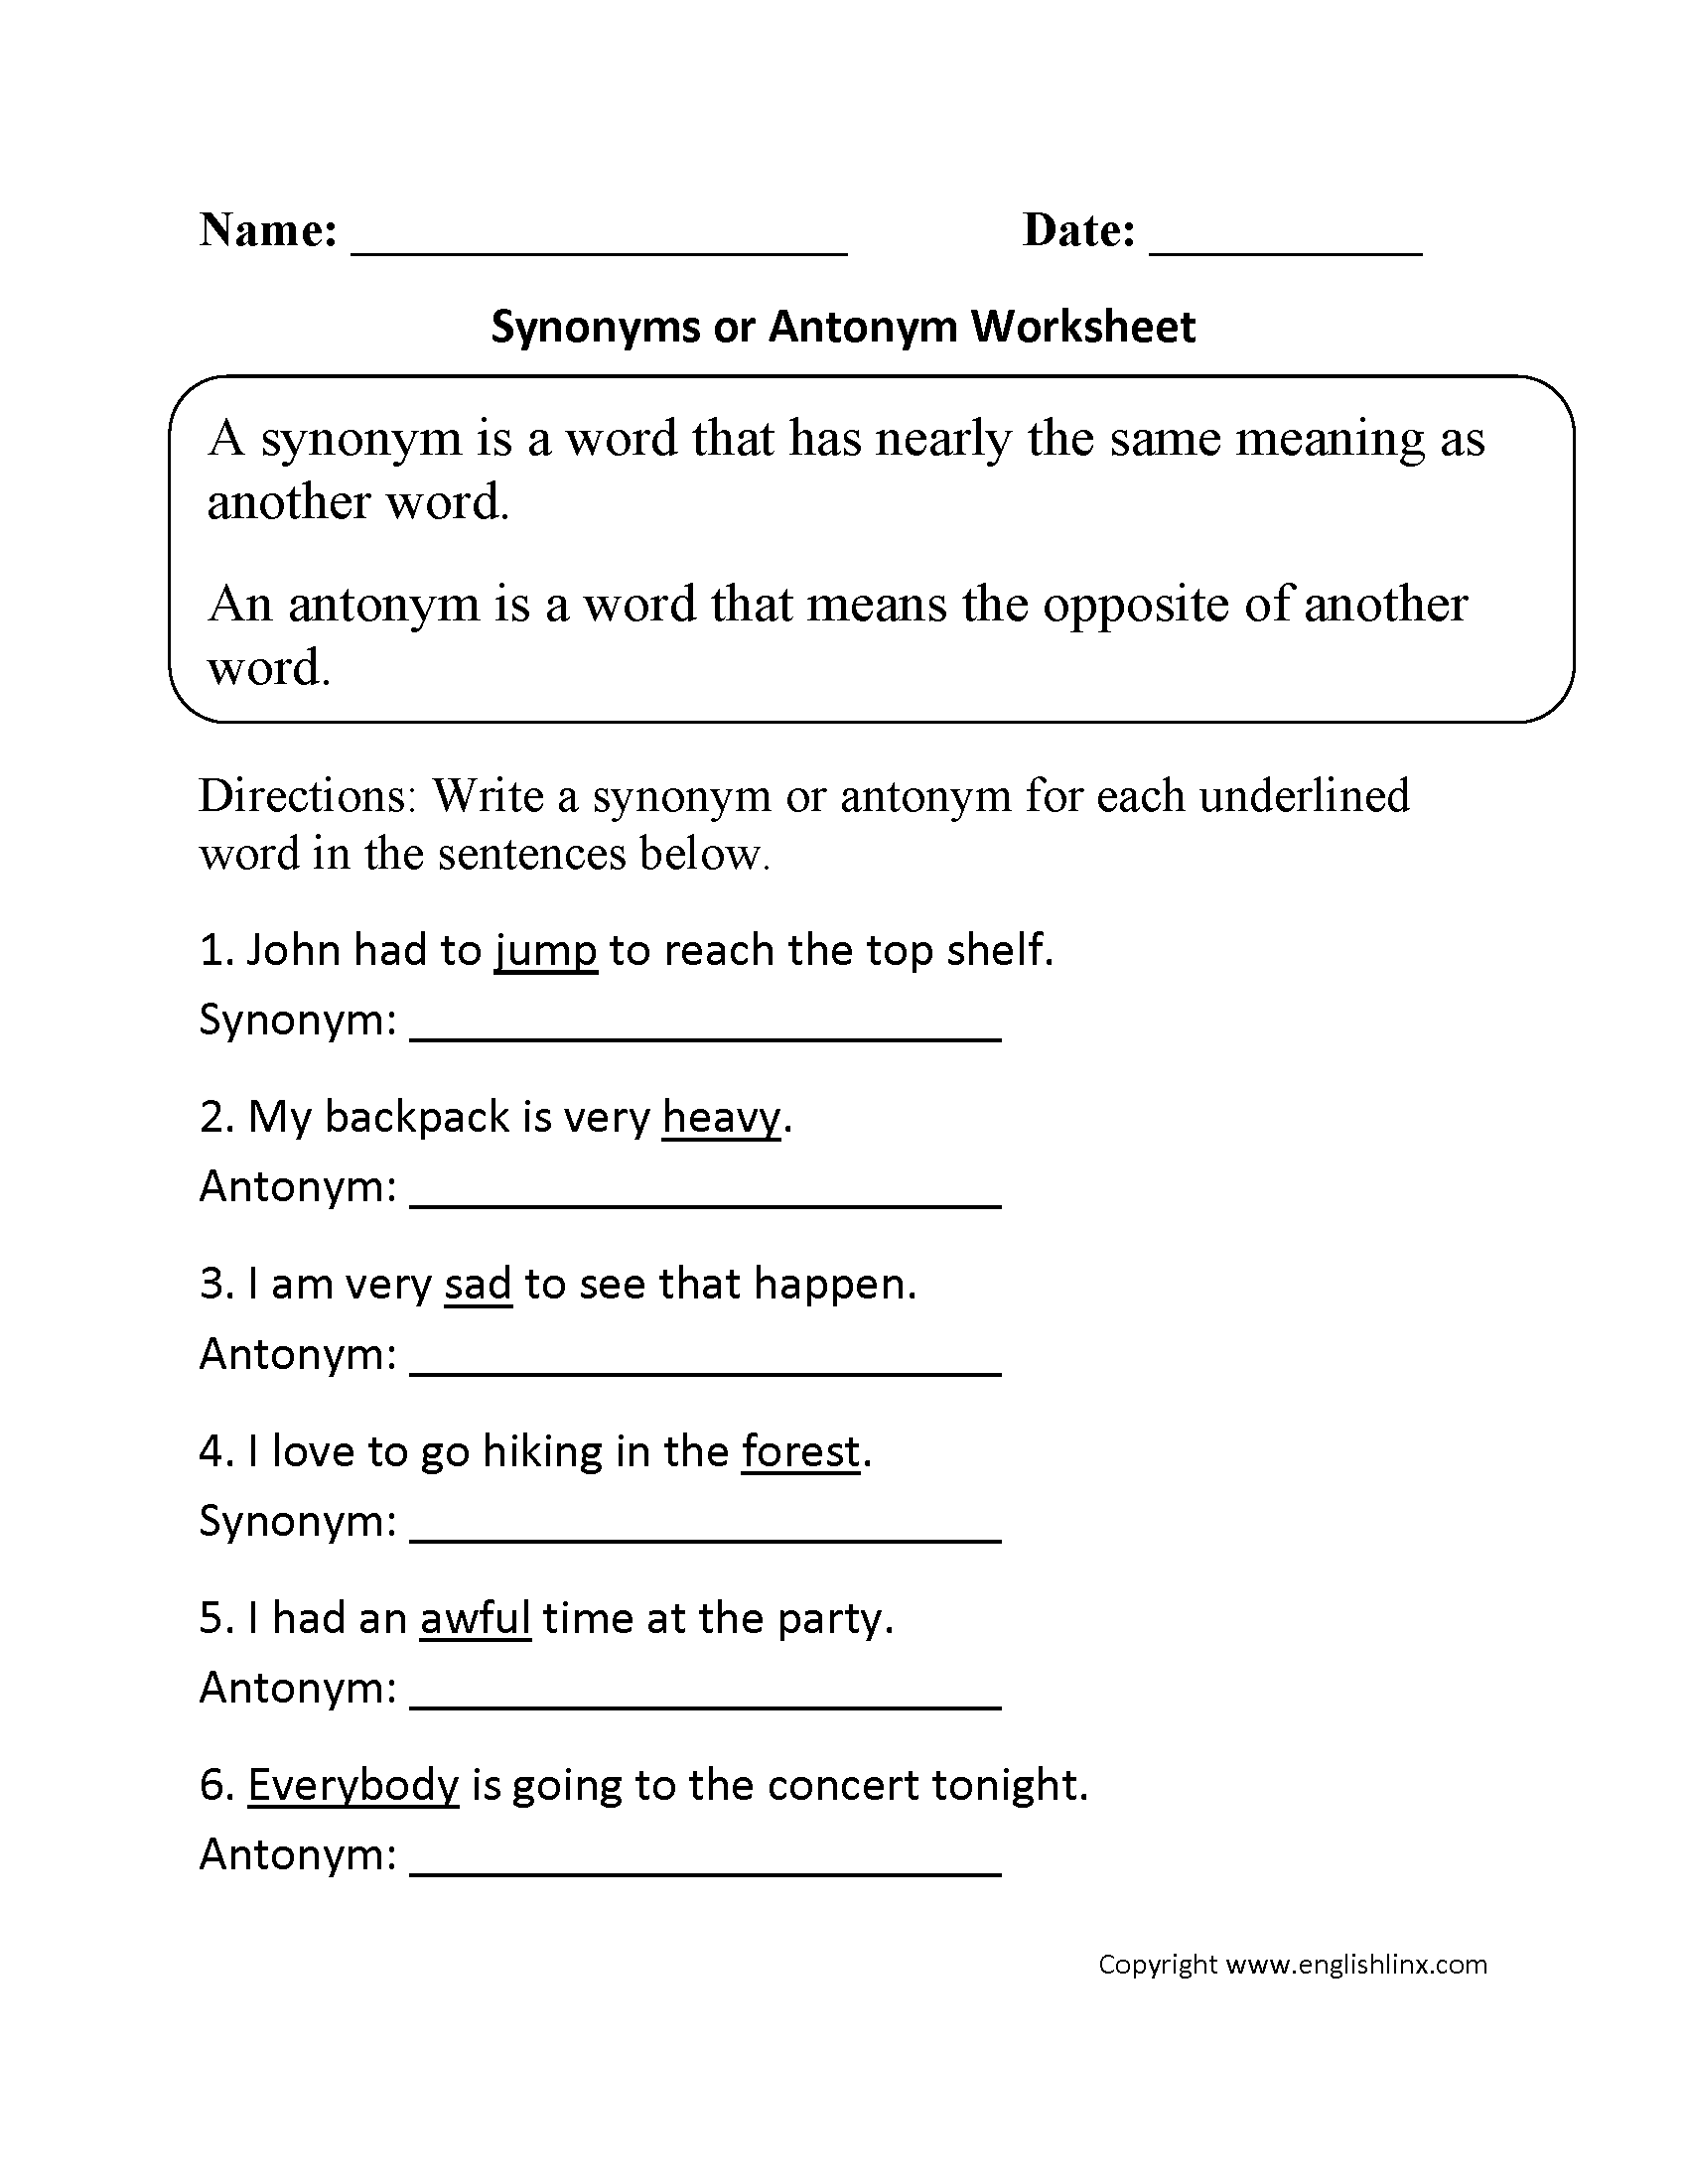 Synonyms And Antonyms Worksheet Free Worksheets Library